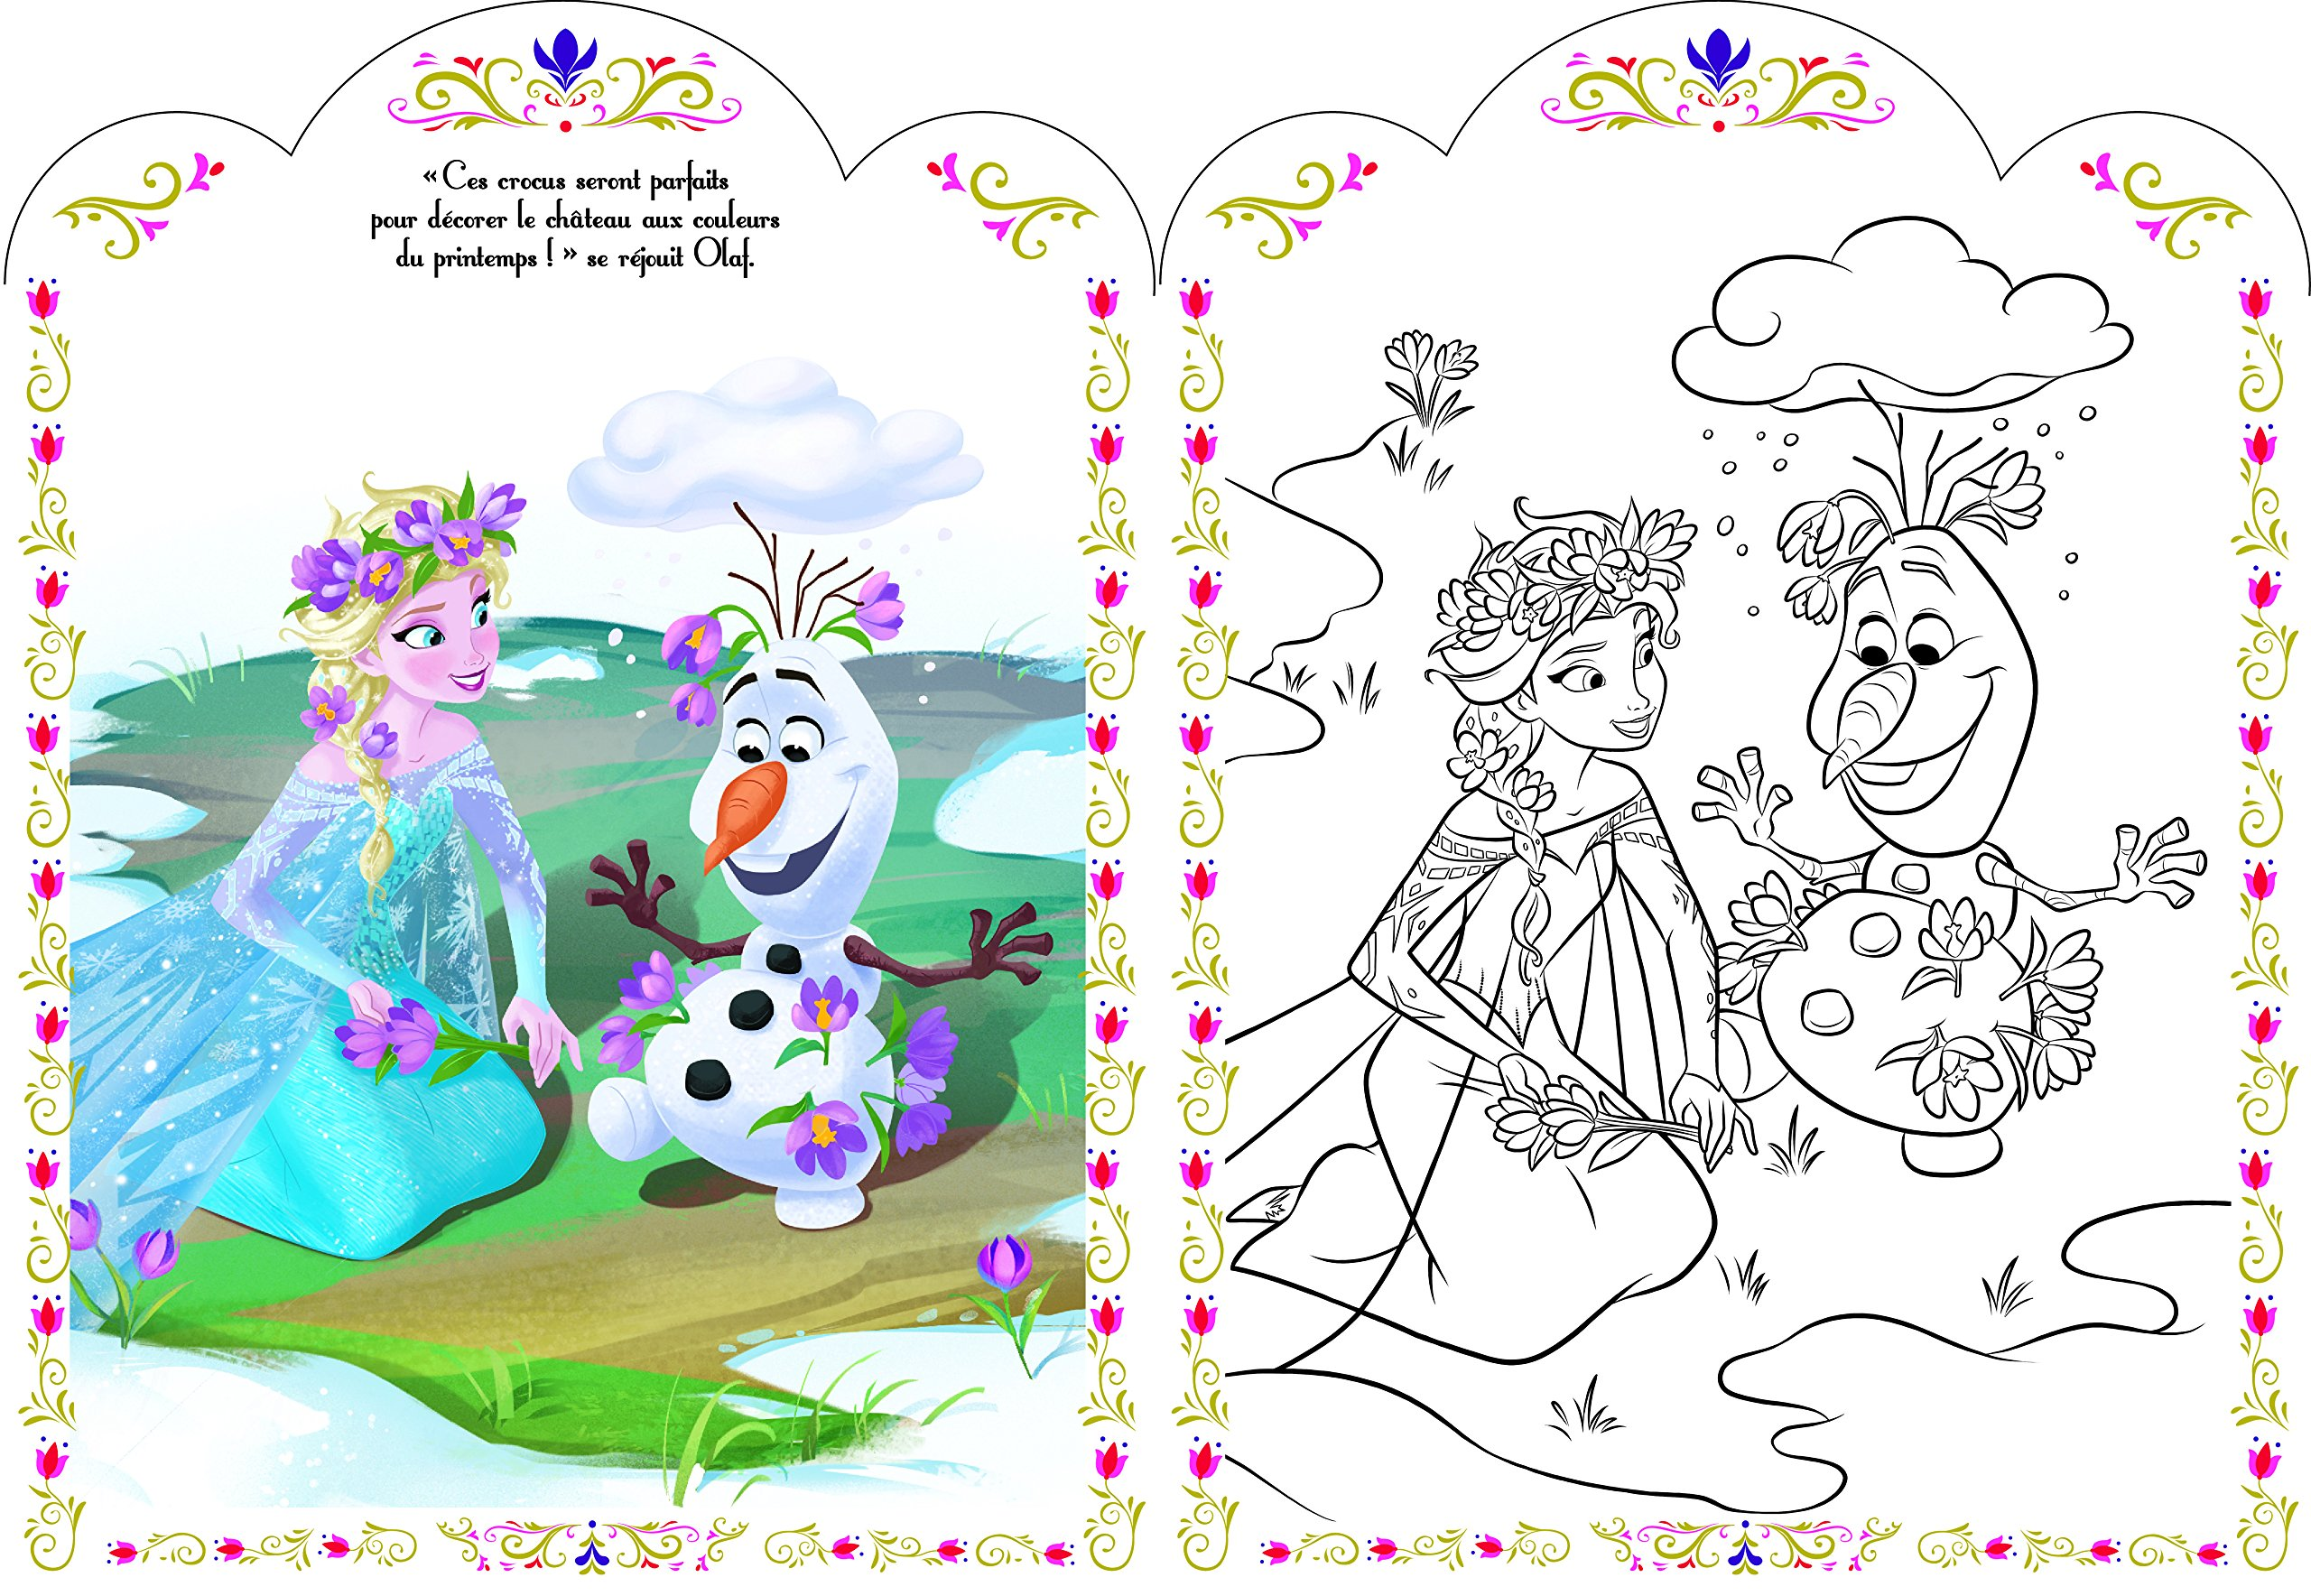 Coloriage Reine Des Neiges Chateau.Disney La Reine Des Neiges Coloriage Avec Stickers Amazon Fr